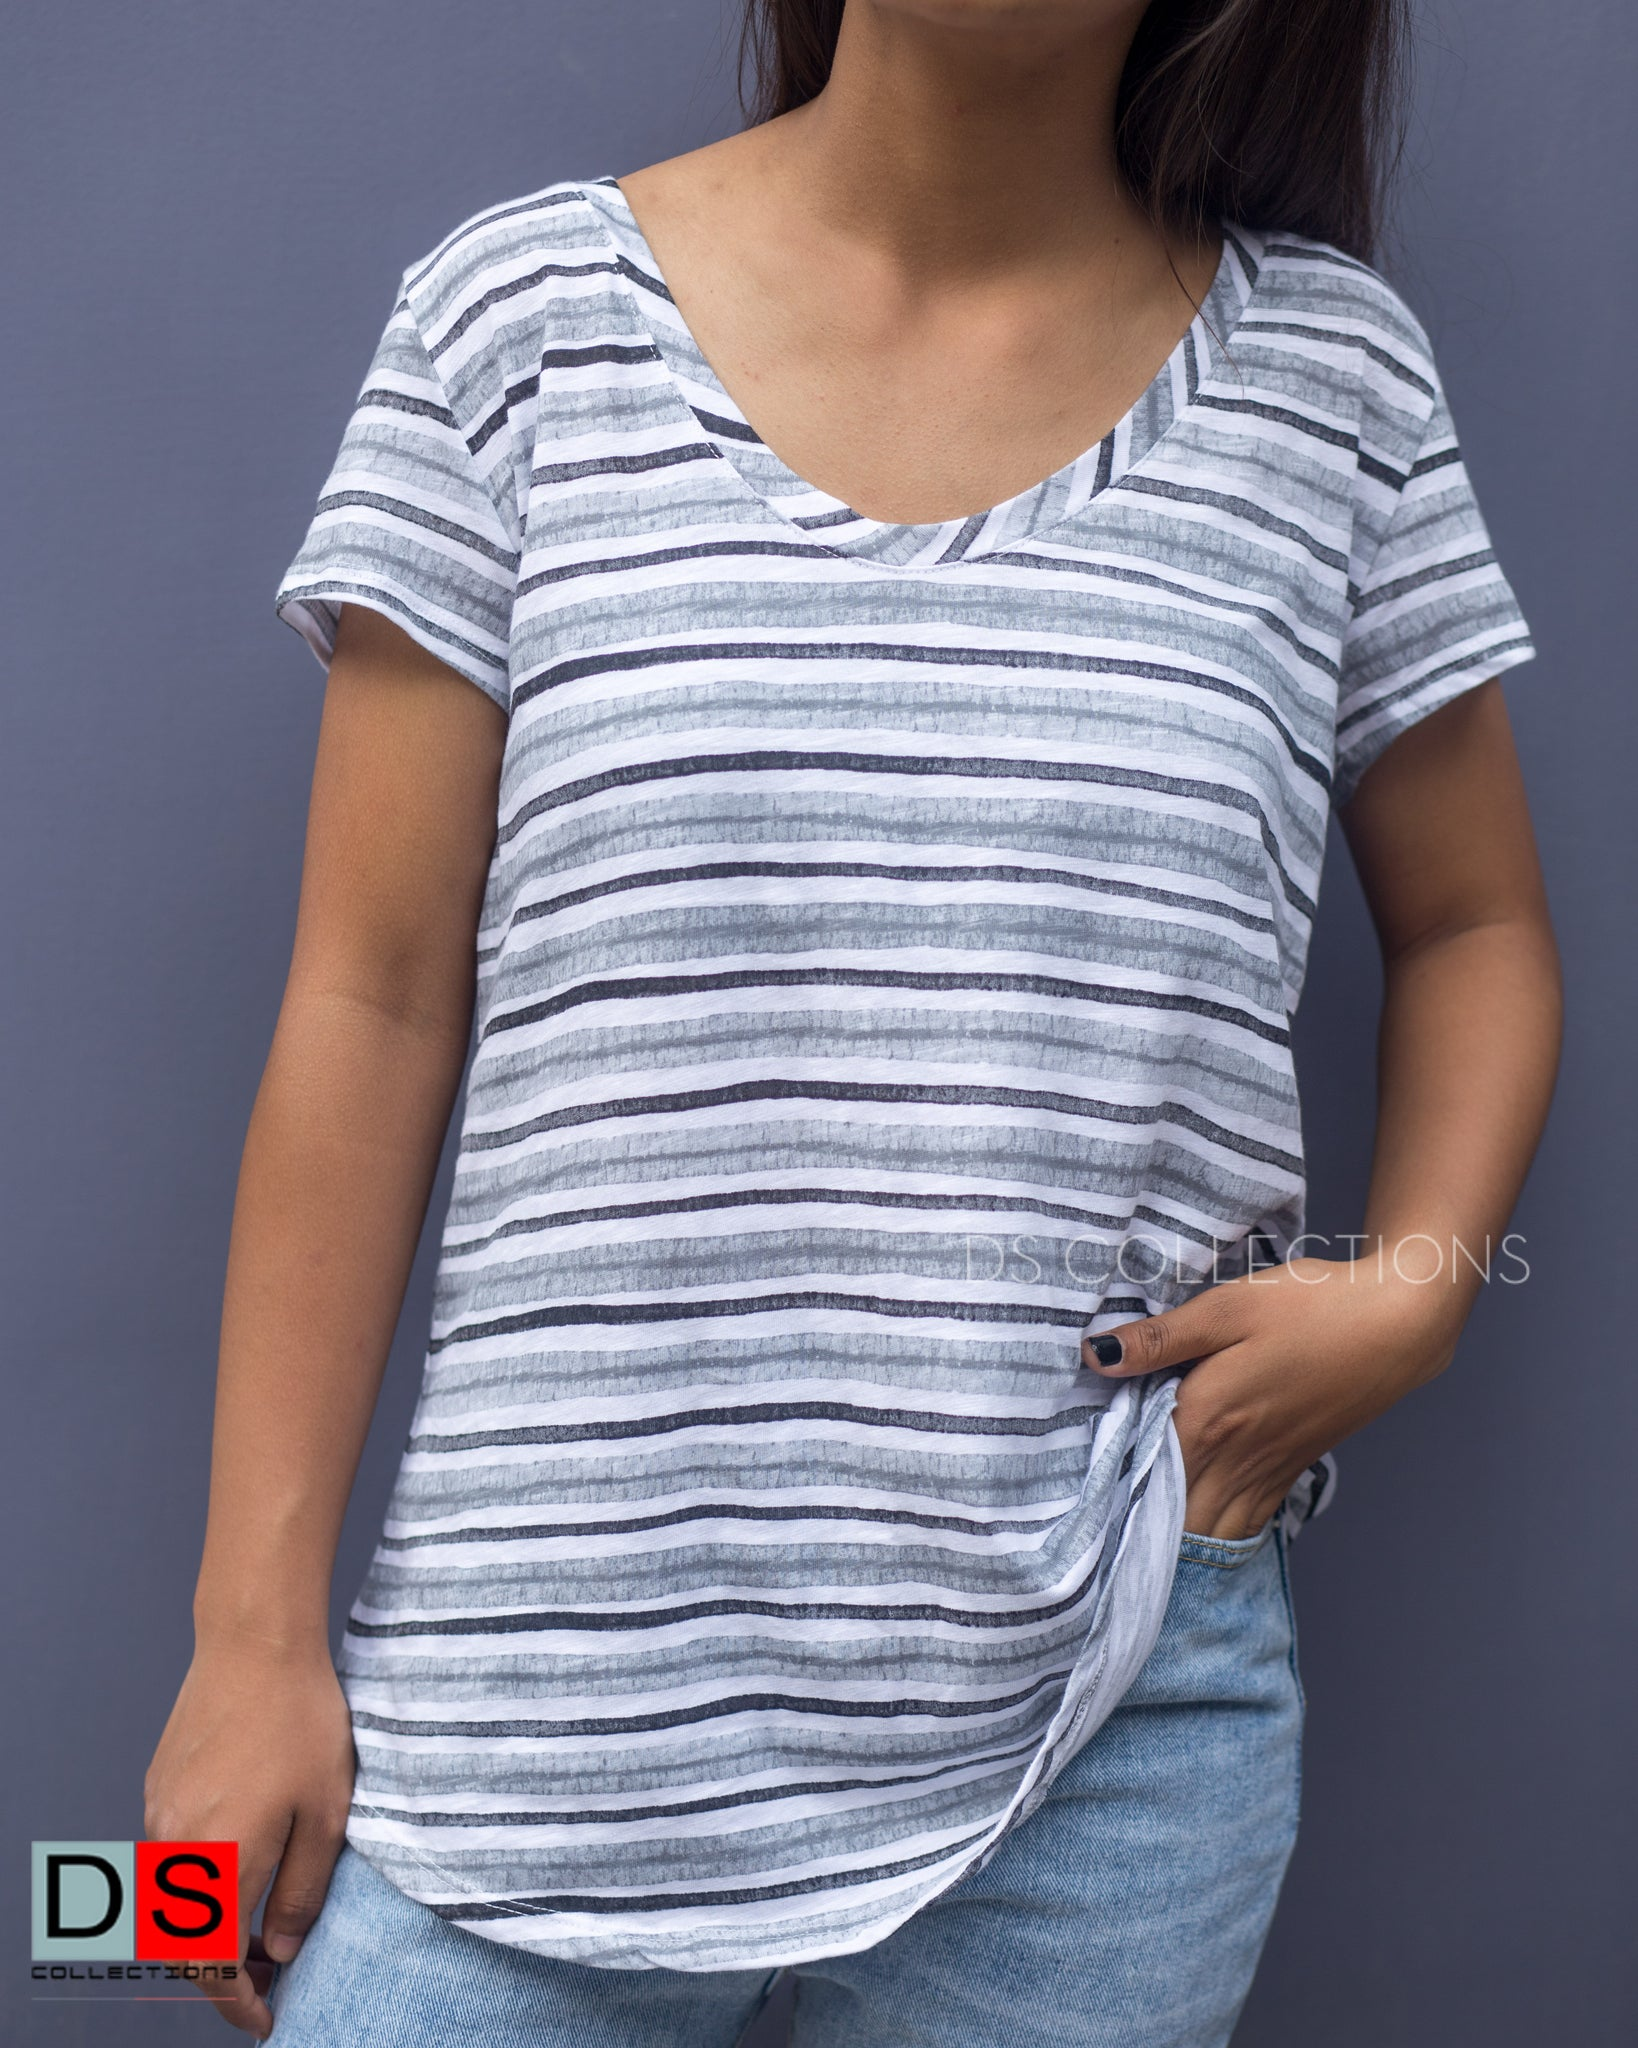 Women's Top - Stripped Basic Top | DS Collections Nepal